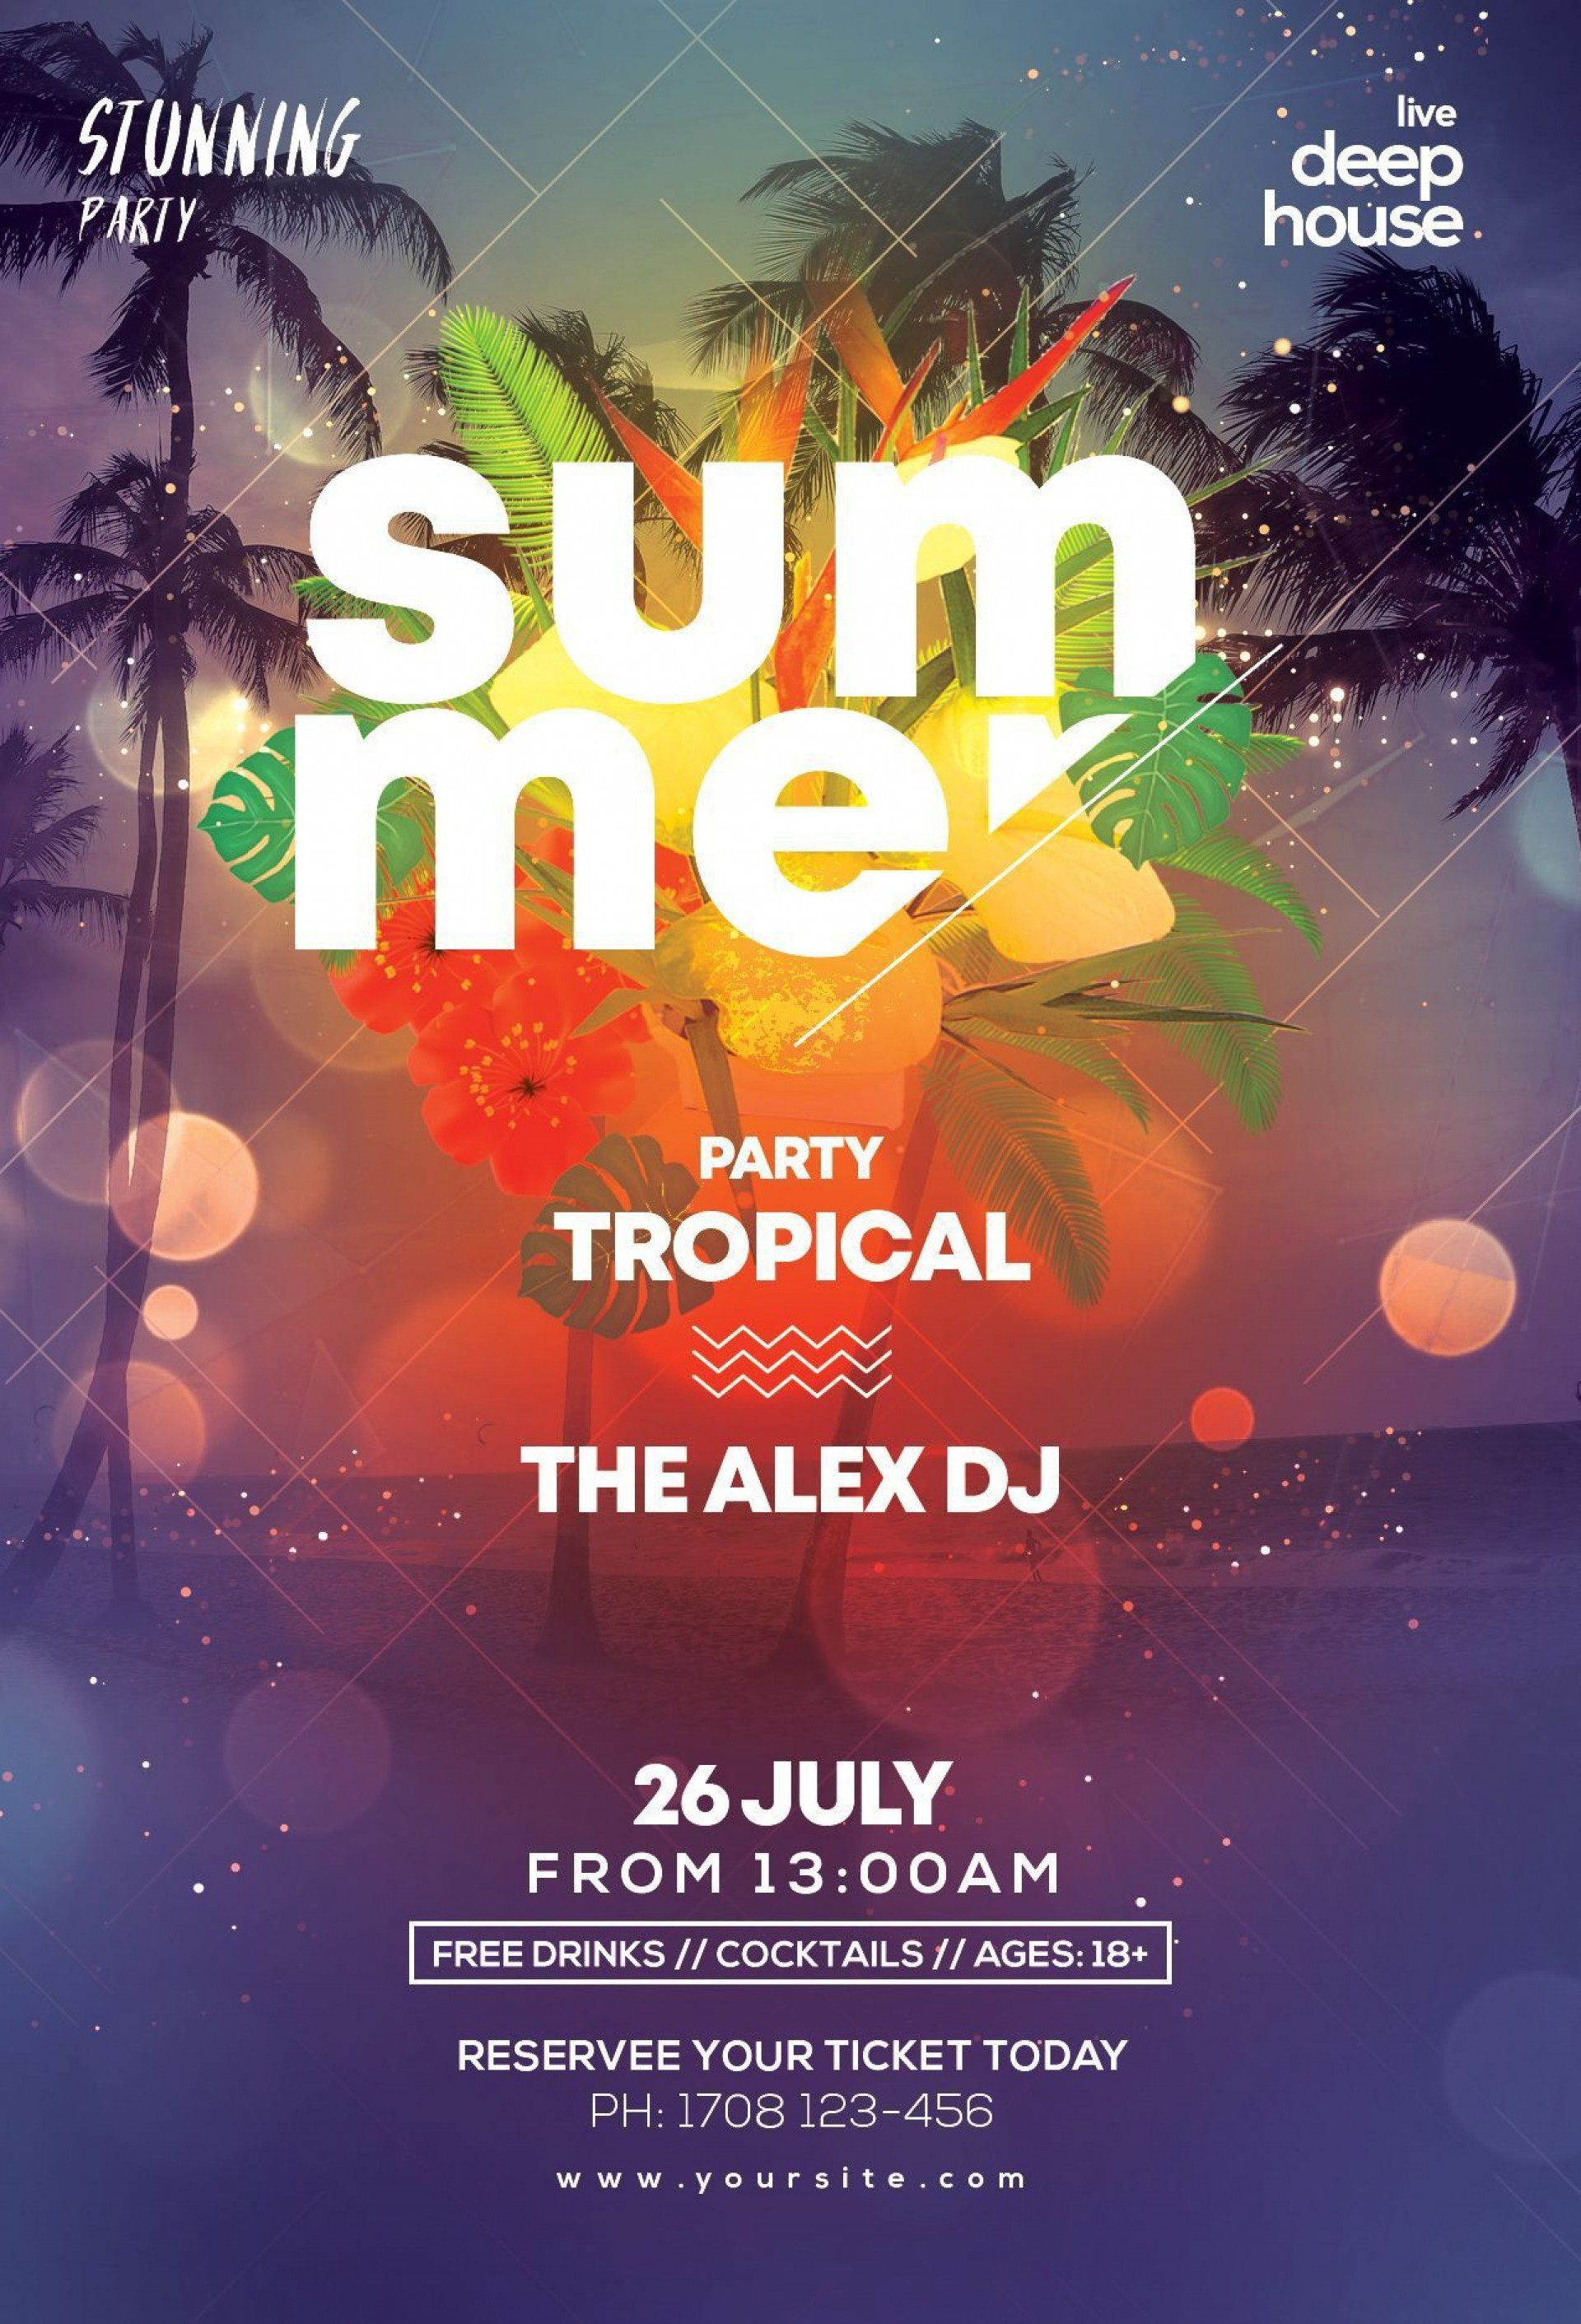 003 Top Summer Party Flyer Template Free Download Photo 1920